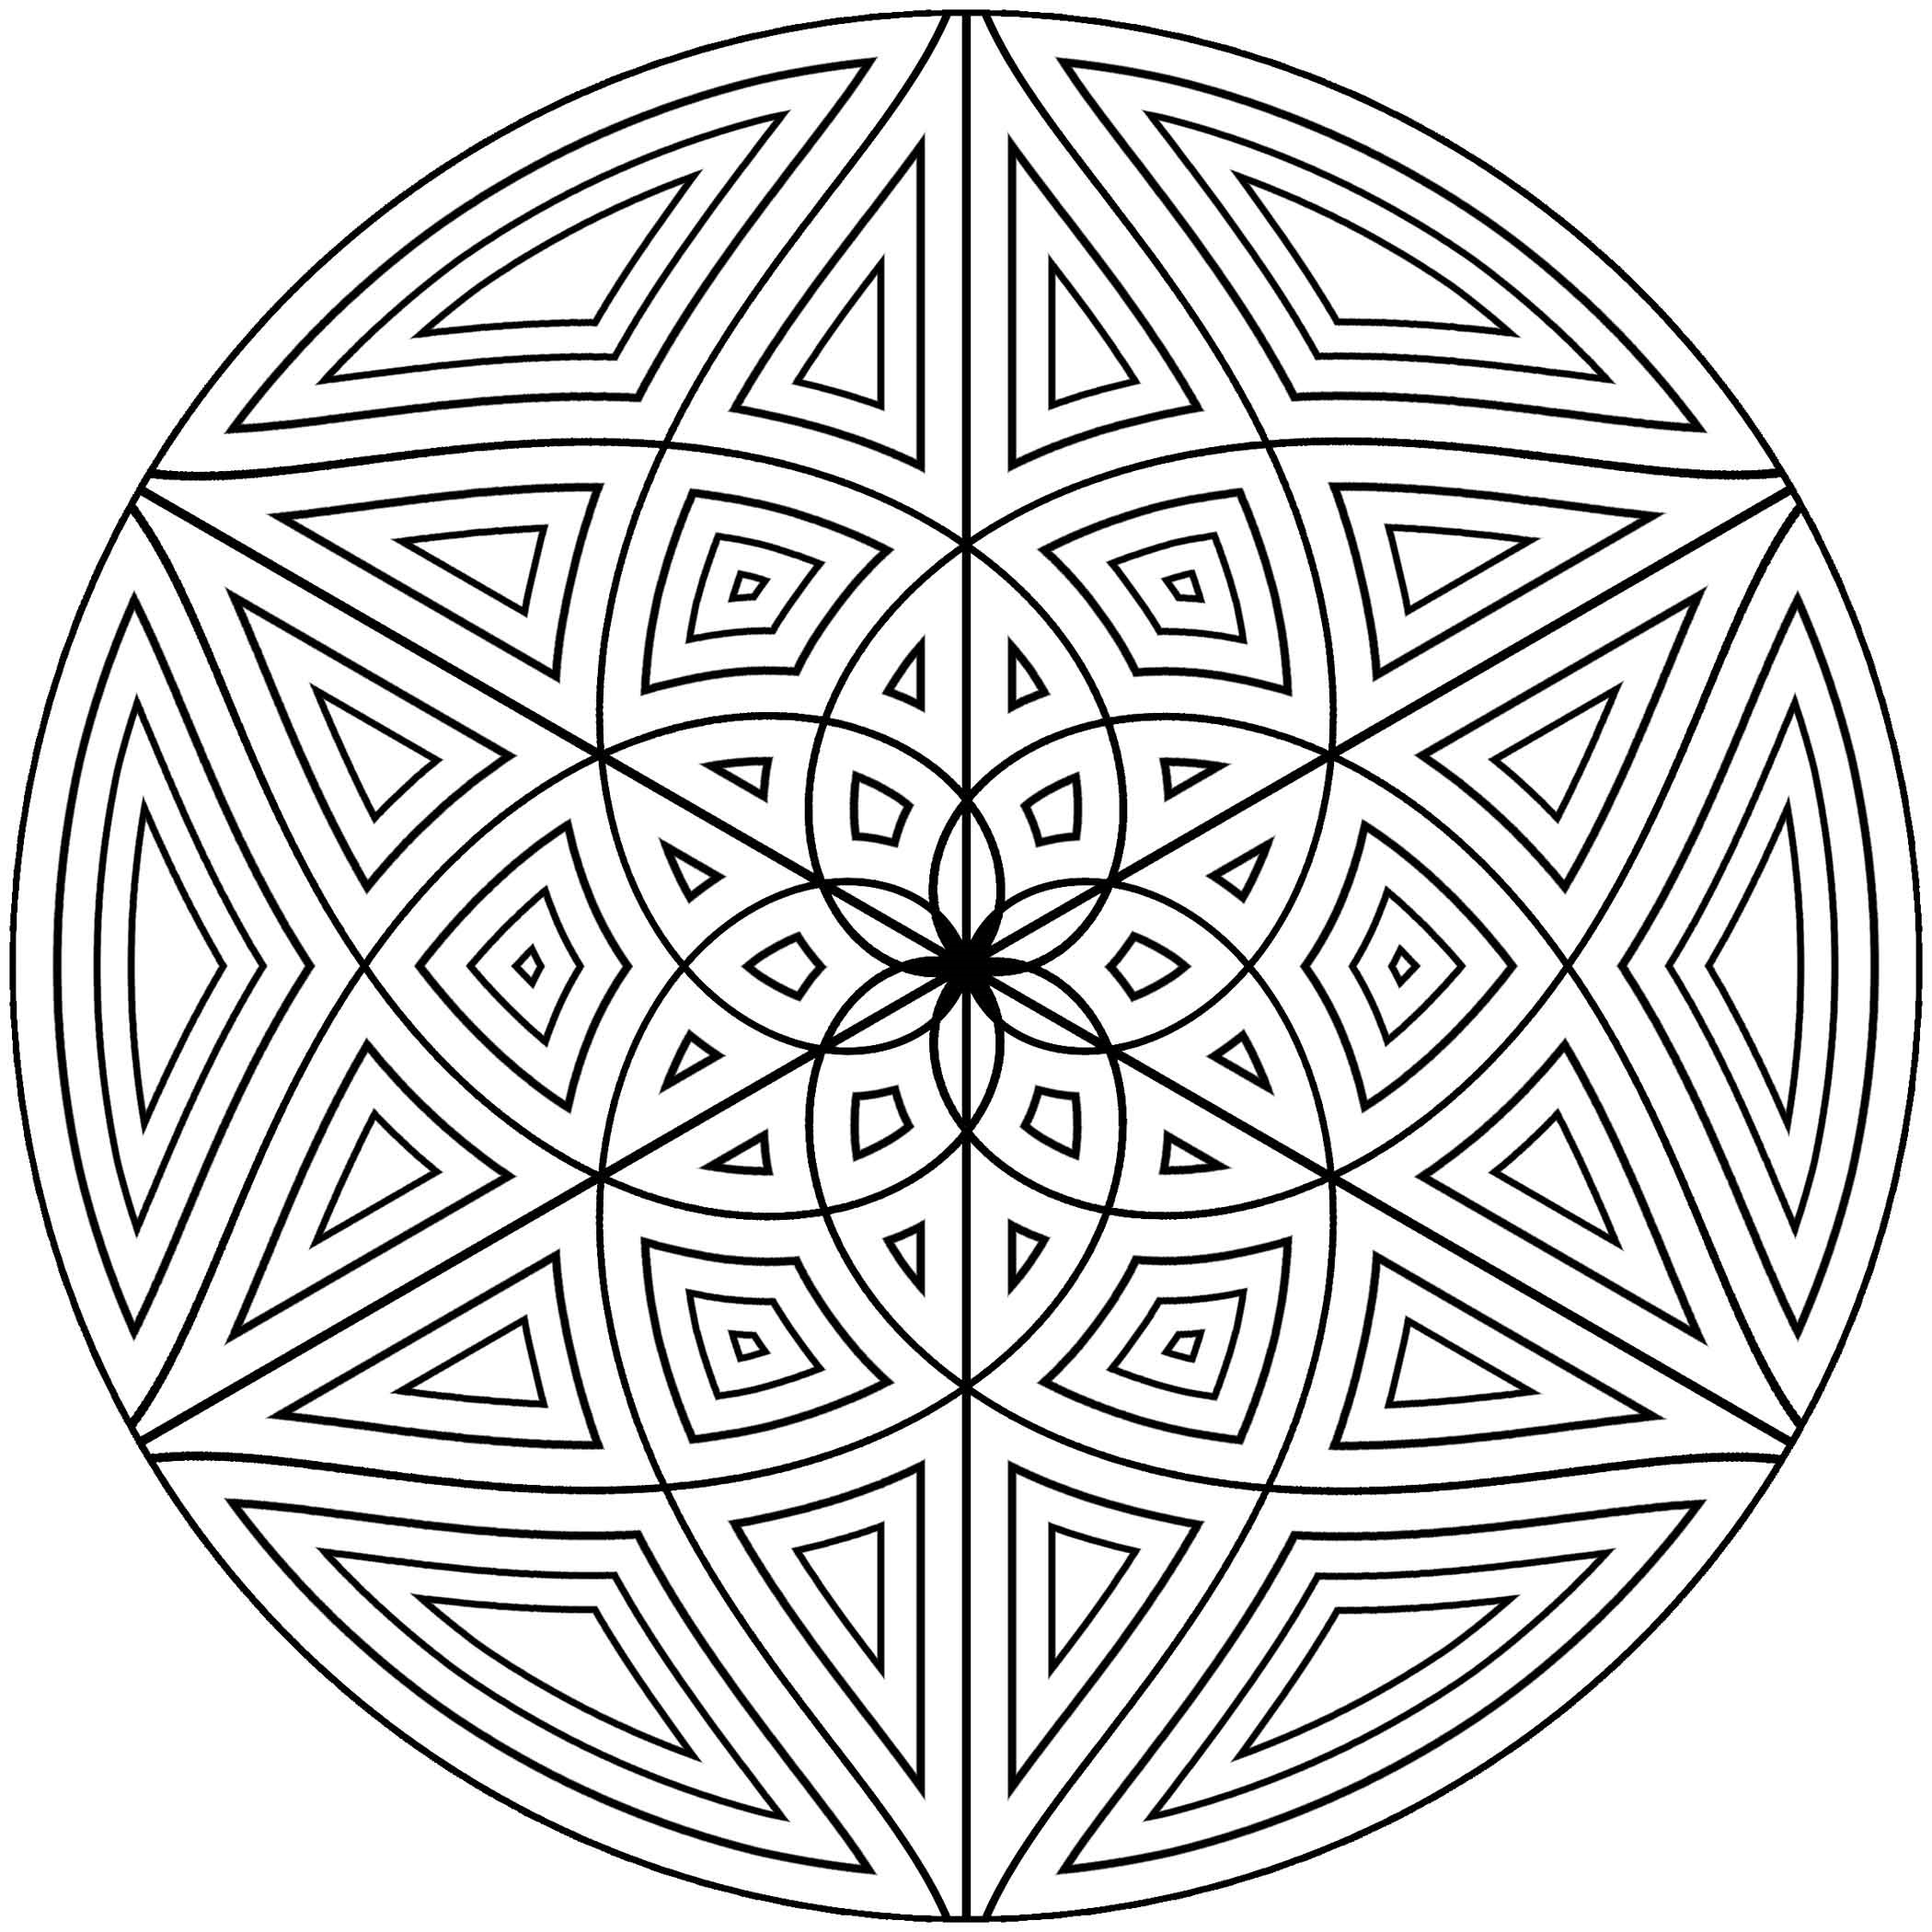 coloring pages designs geometric design coloring pages to download and print for free coloring pages designs